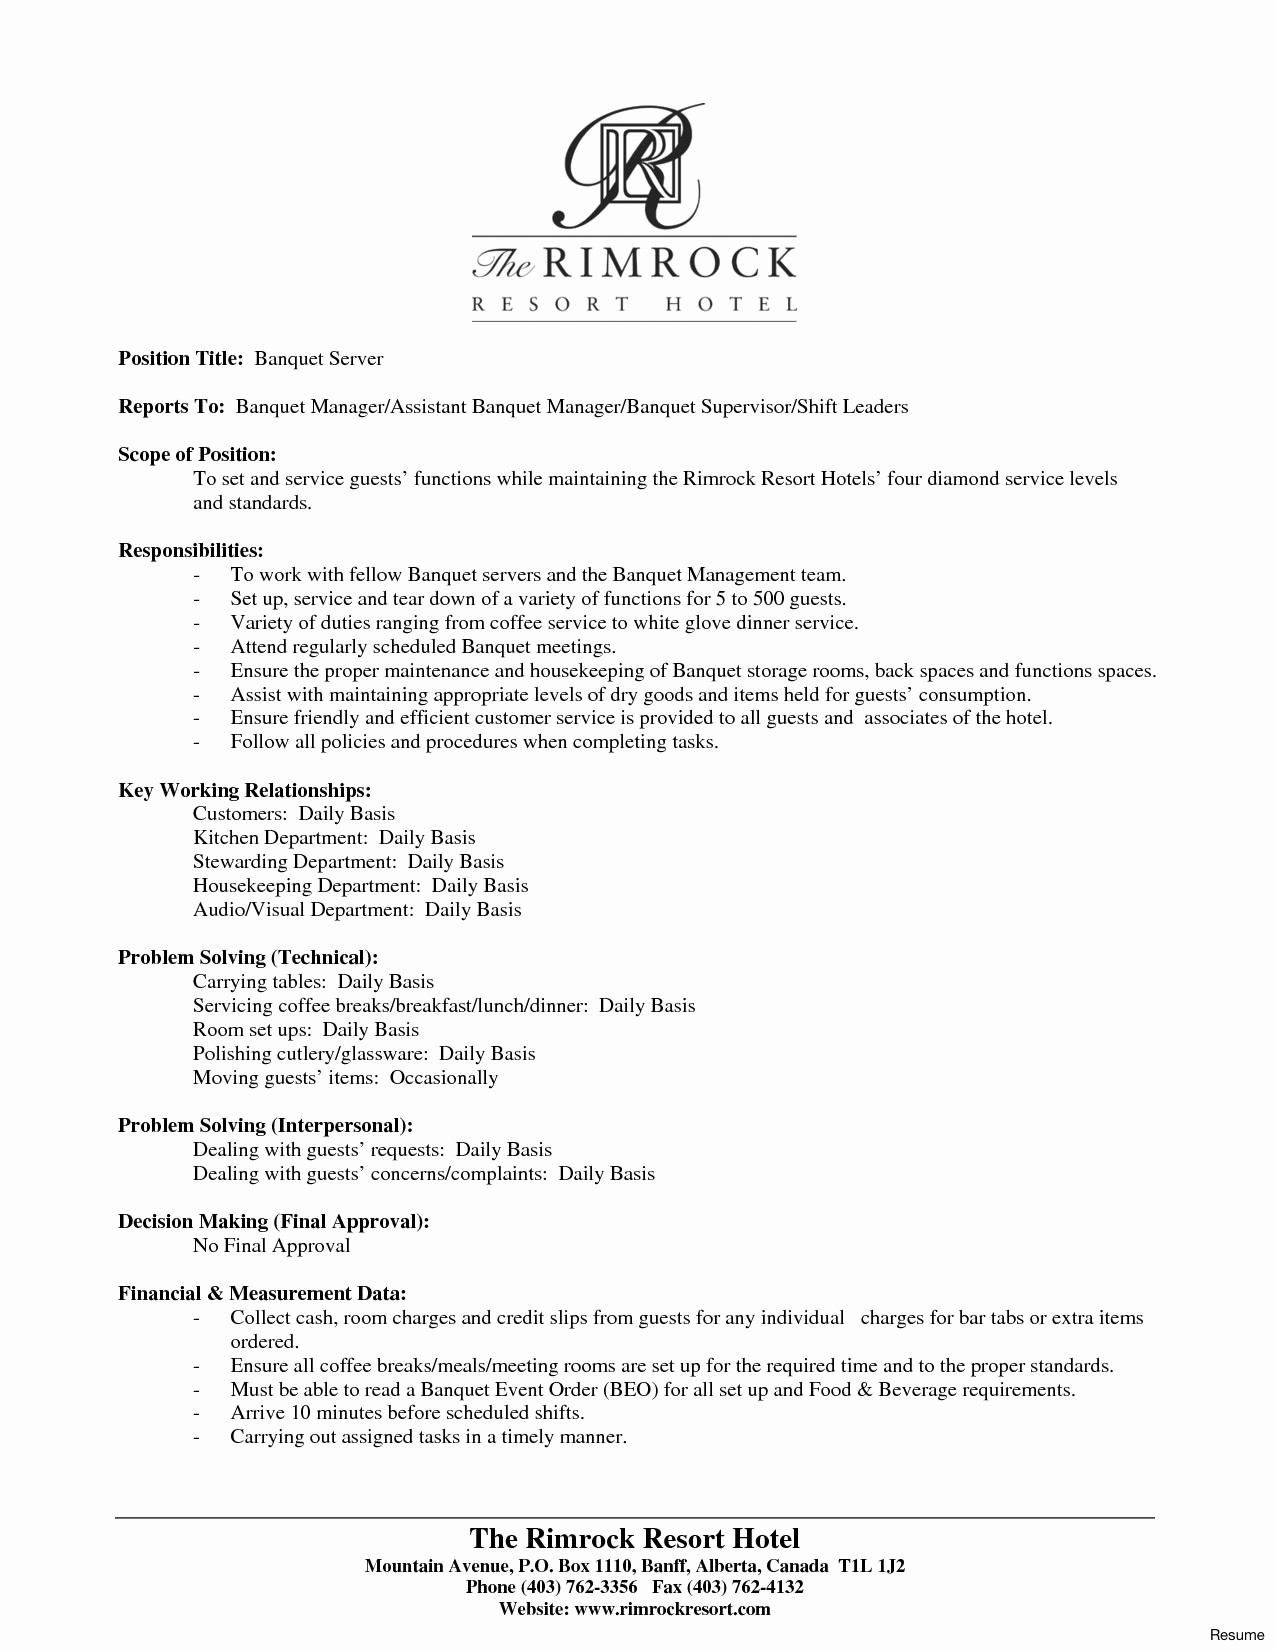 Writing A Proposal Letter Template - Writing A Proposal Letter for A Job Save Cover Letter Example for